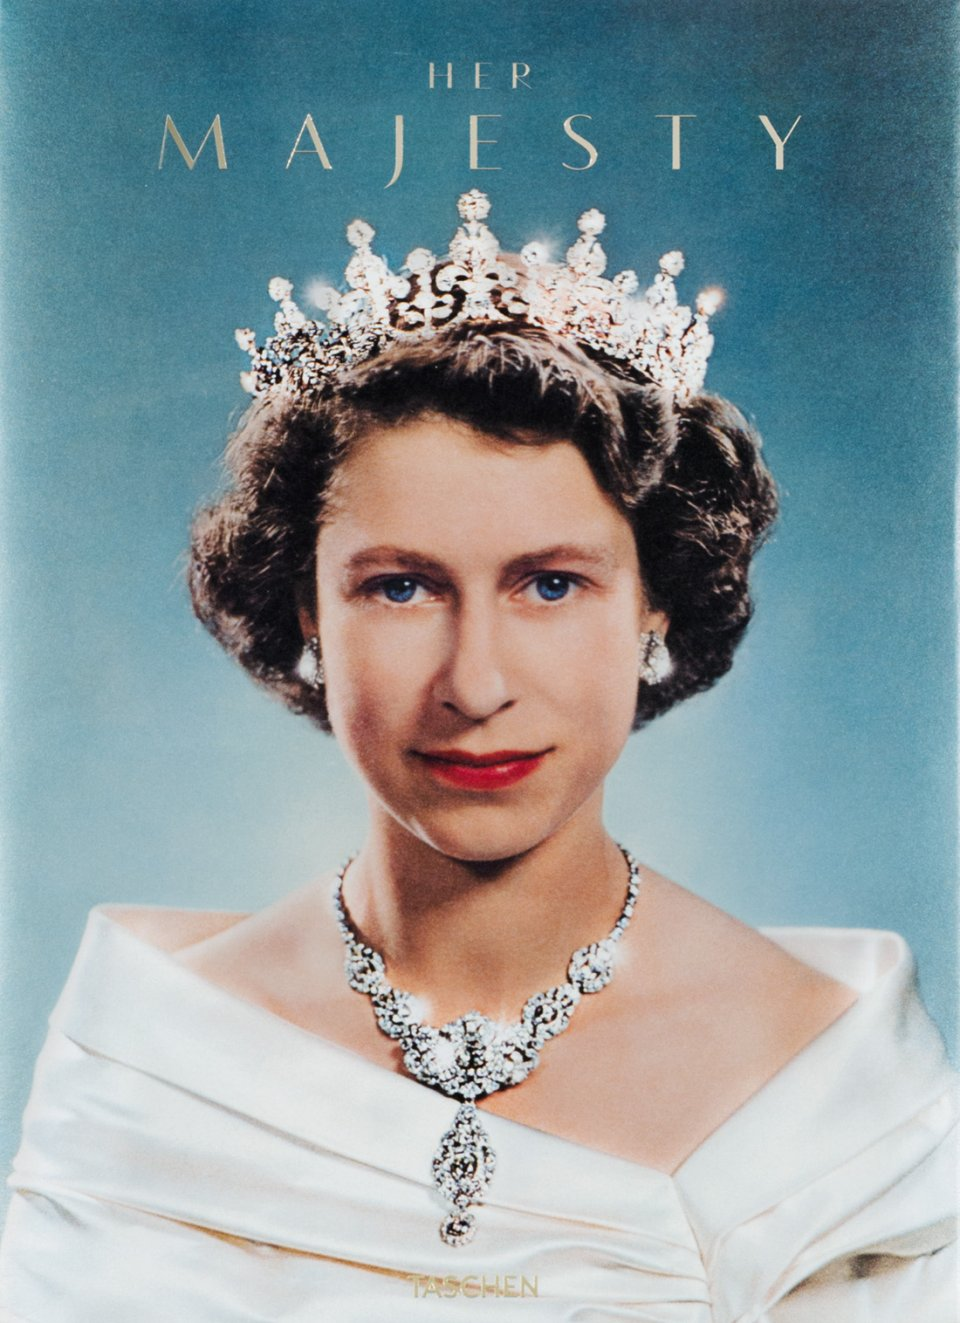 The Queen gets her photographic tribute in Her Majesty, published by TASCHEN Books.